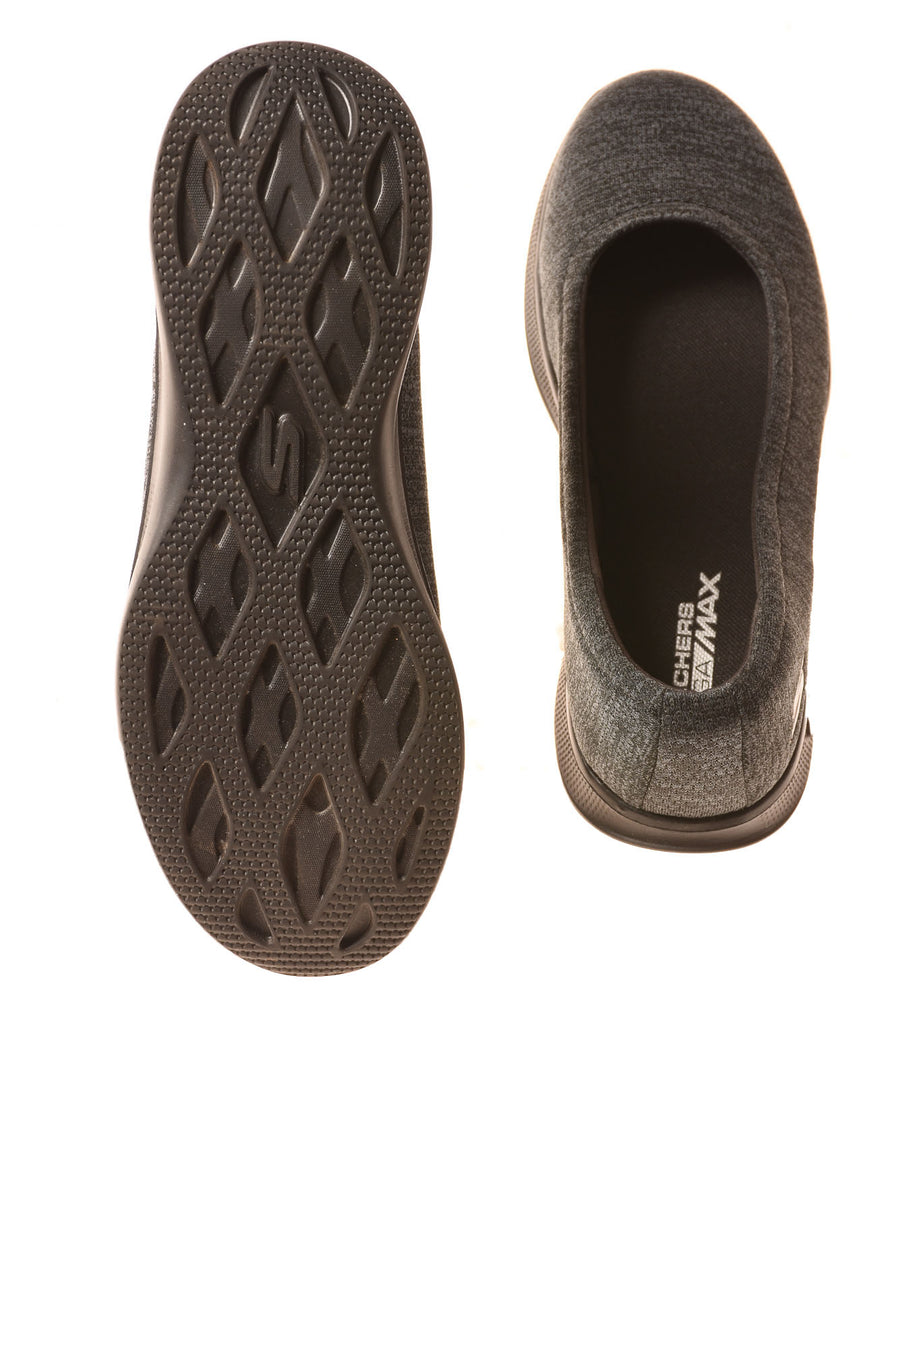 USED Skechers Women's Shoes 9 Charcoal